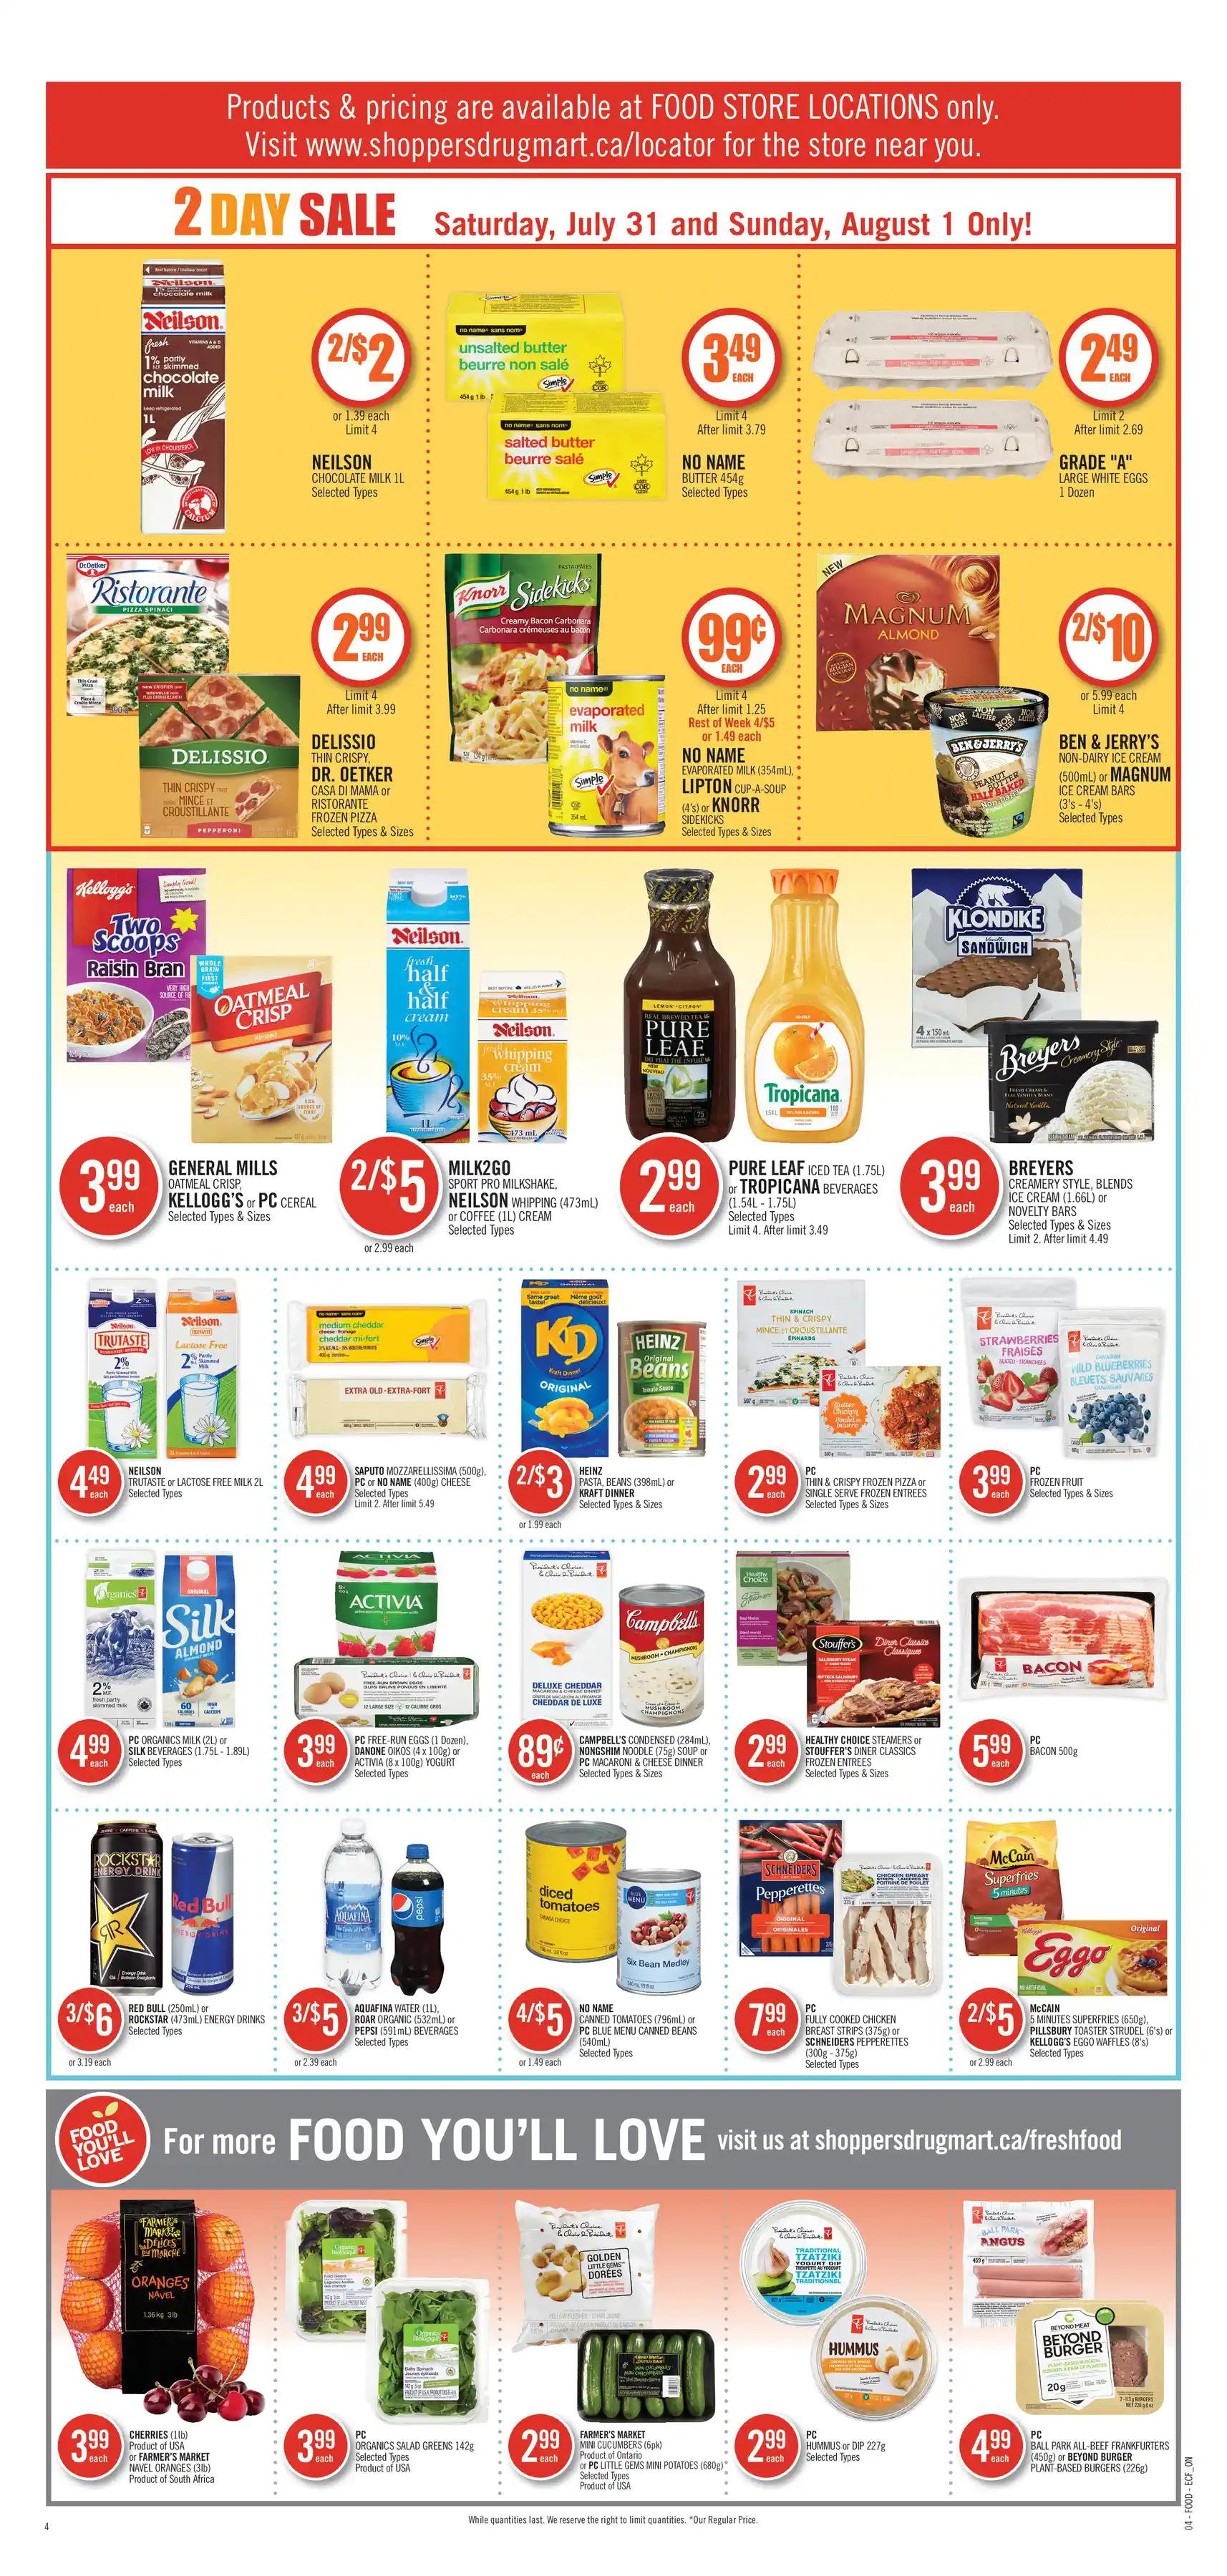 Shoppers Drug Mart - Weekly Flyer Specials - Page 7